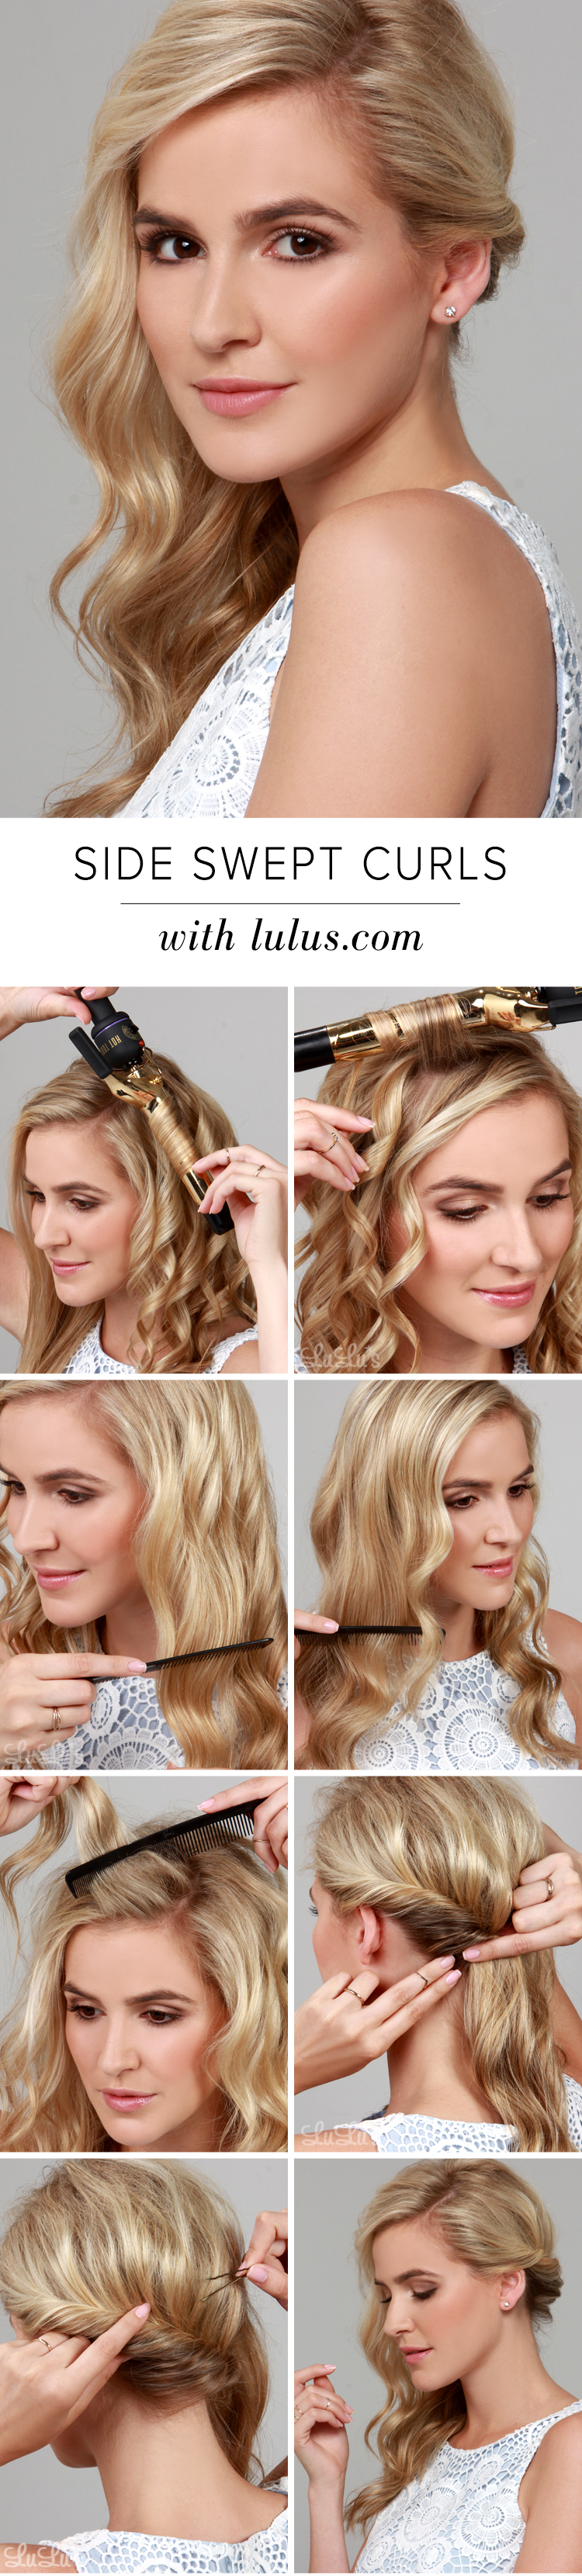 Check out 19 Homecoming Dance Hairstyles Inspiration Perfect For The Queen at https://makeuptutorials.com/homecoming-dance-hairstyles/